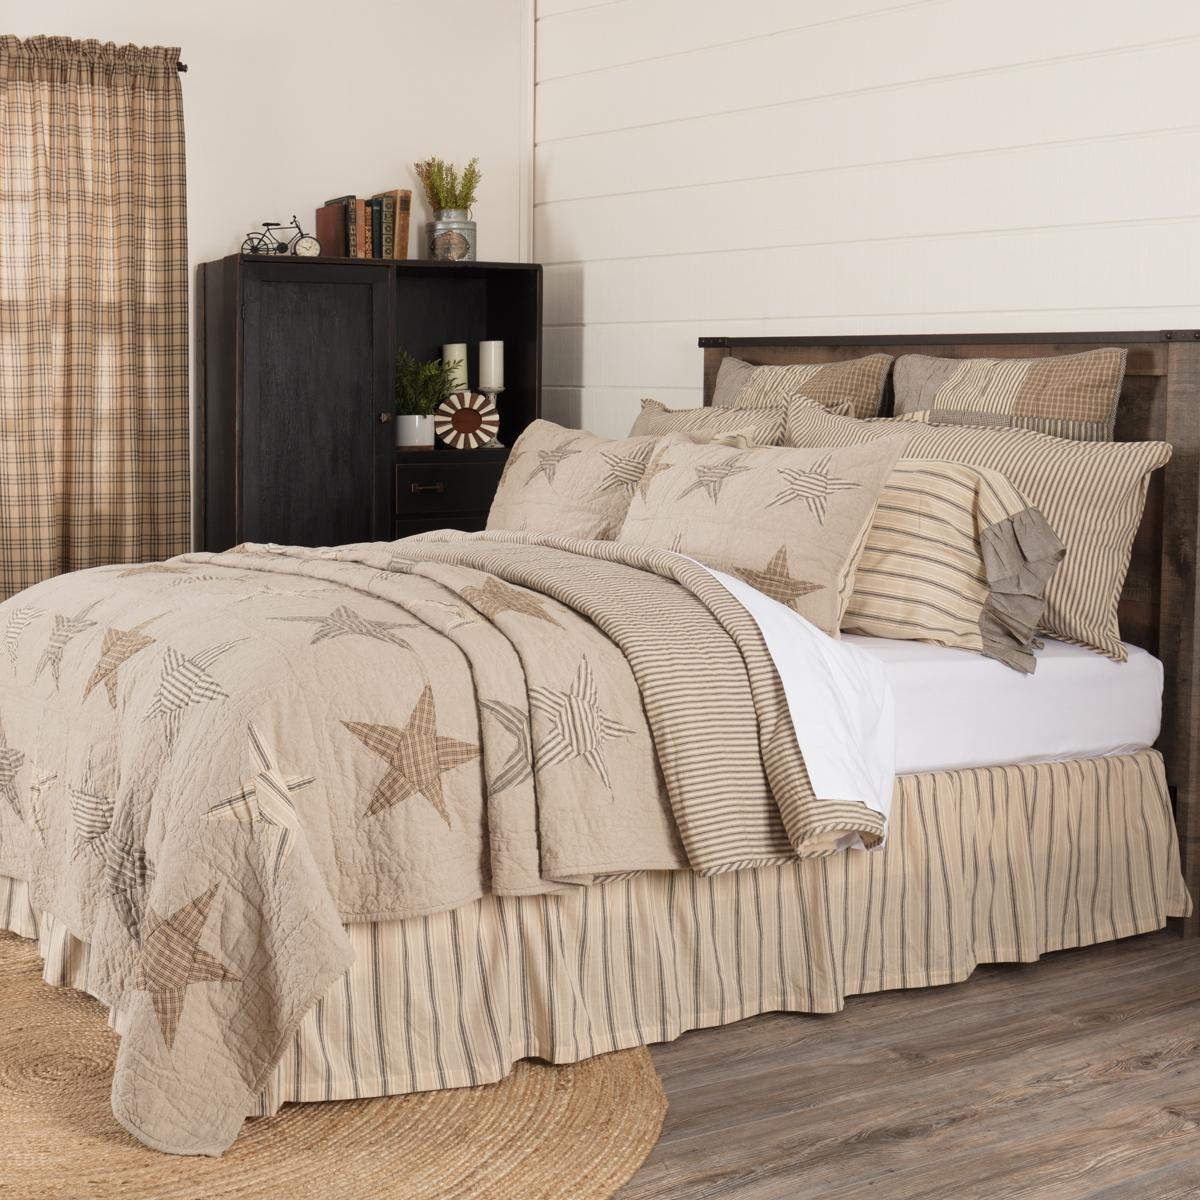 VHC BRANDS SAWYER MILL STAR CHARCOAL QUEEN, KING, LUXURY KIN